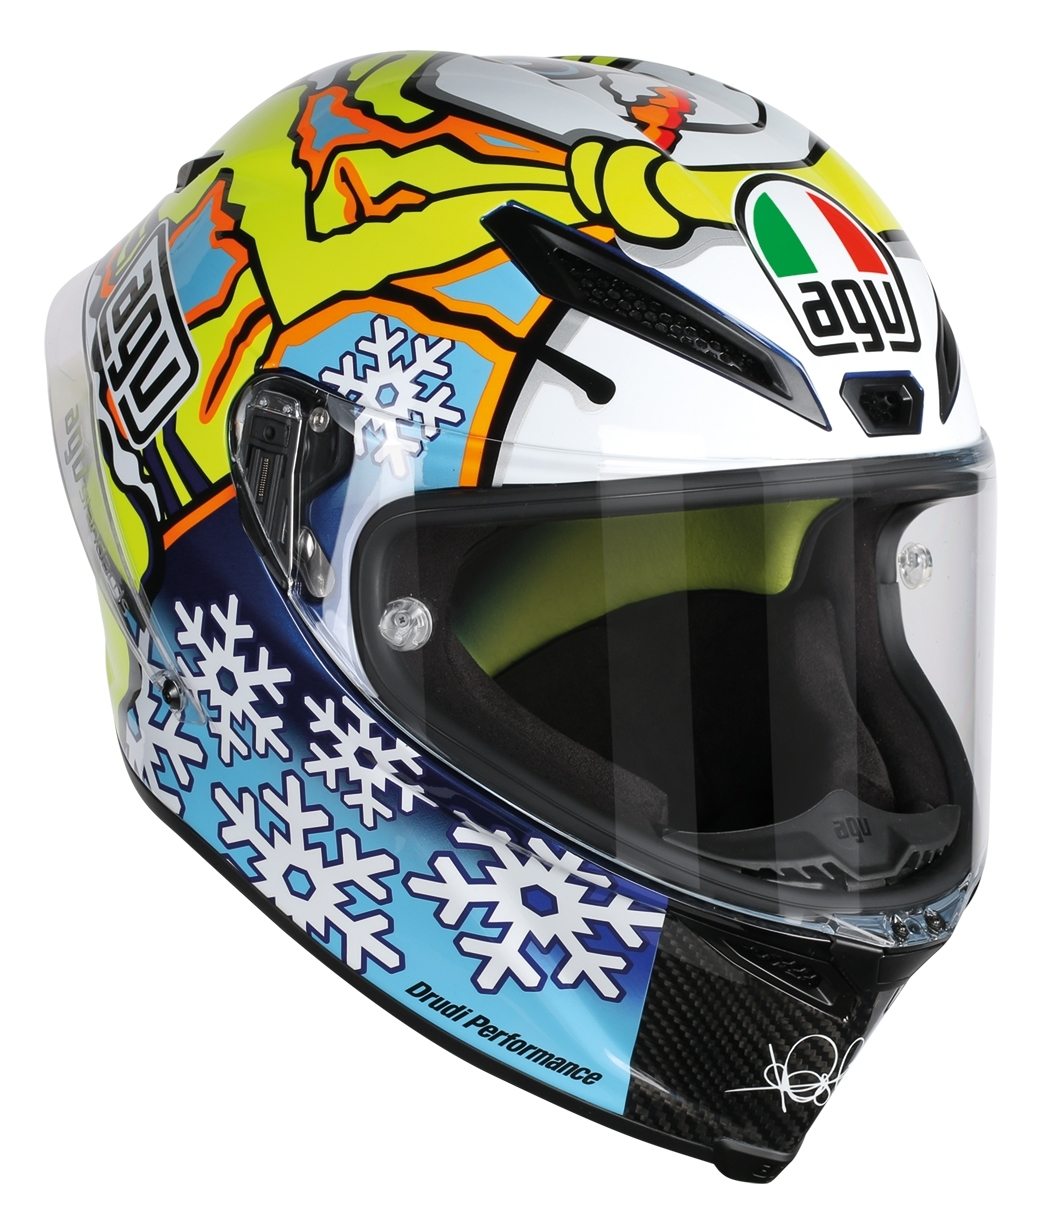 Winter Bettdecken Test 2016 Agv Pista Gp Winter Test Snow Man 2016 Helmet Size Xs